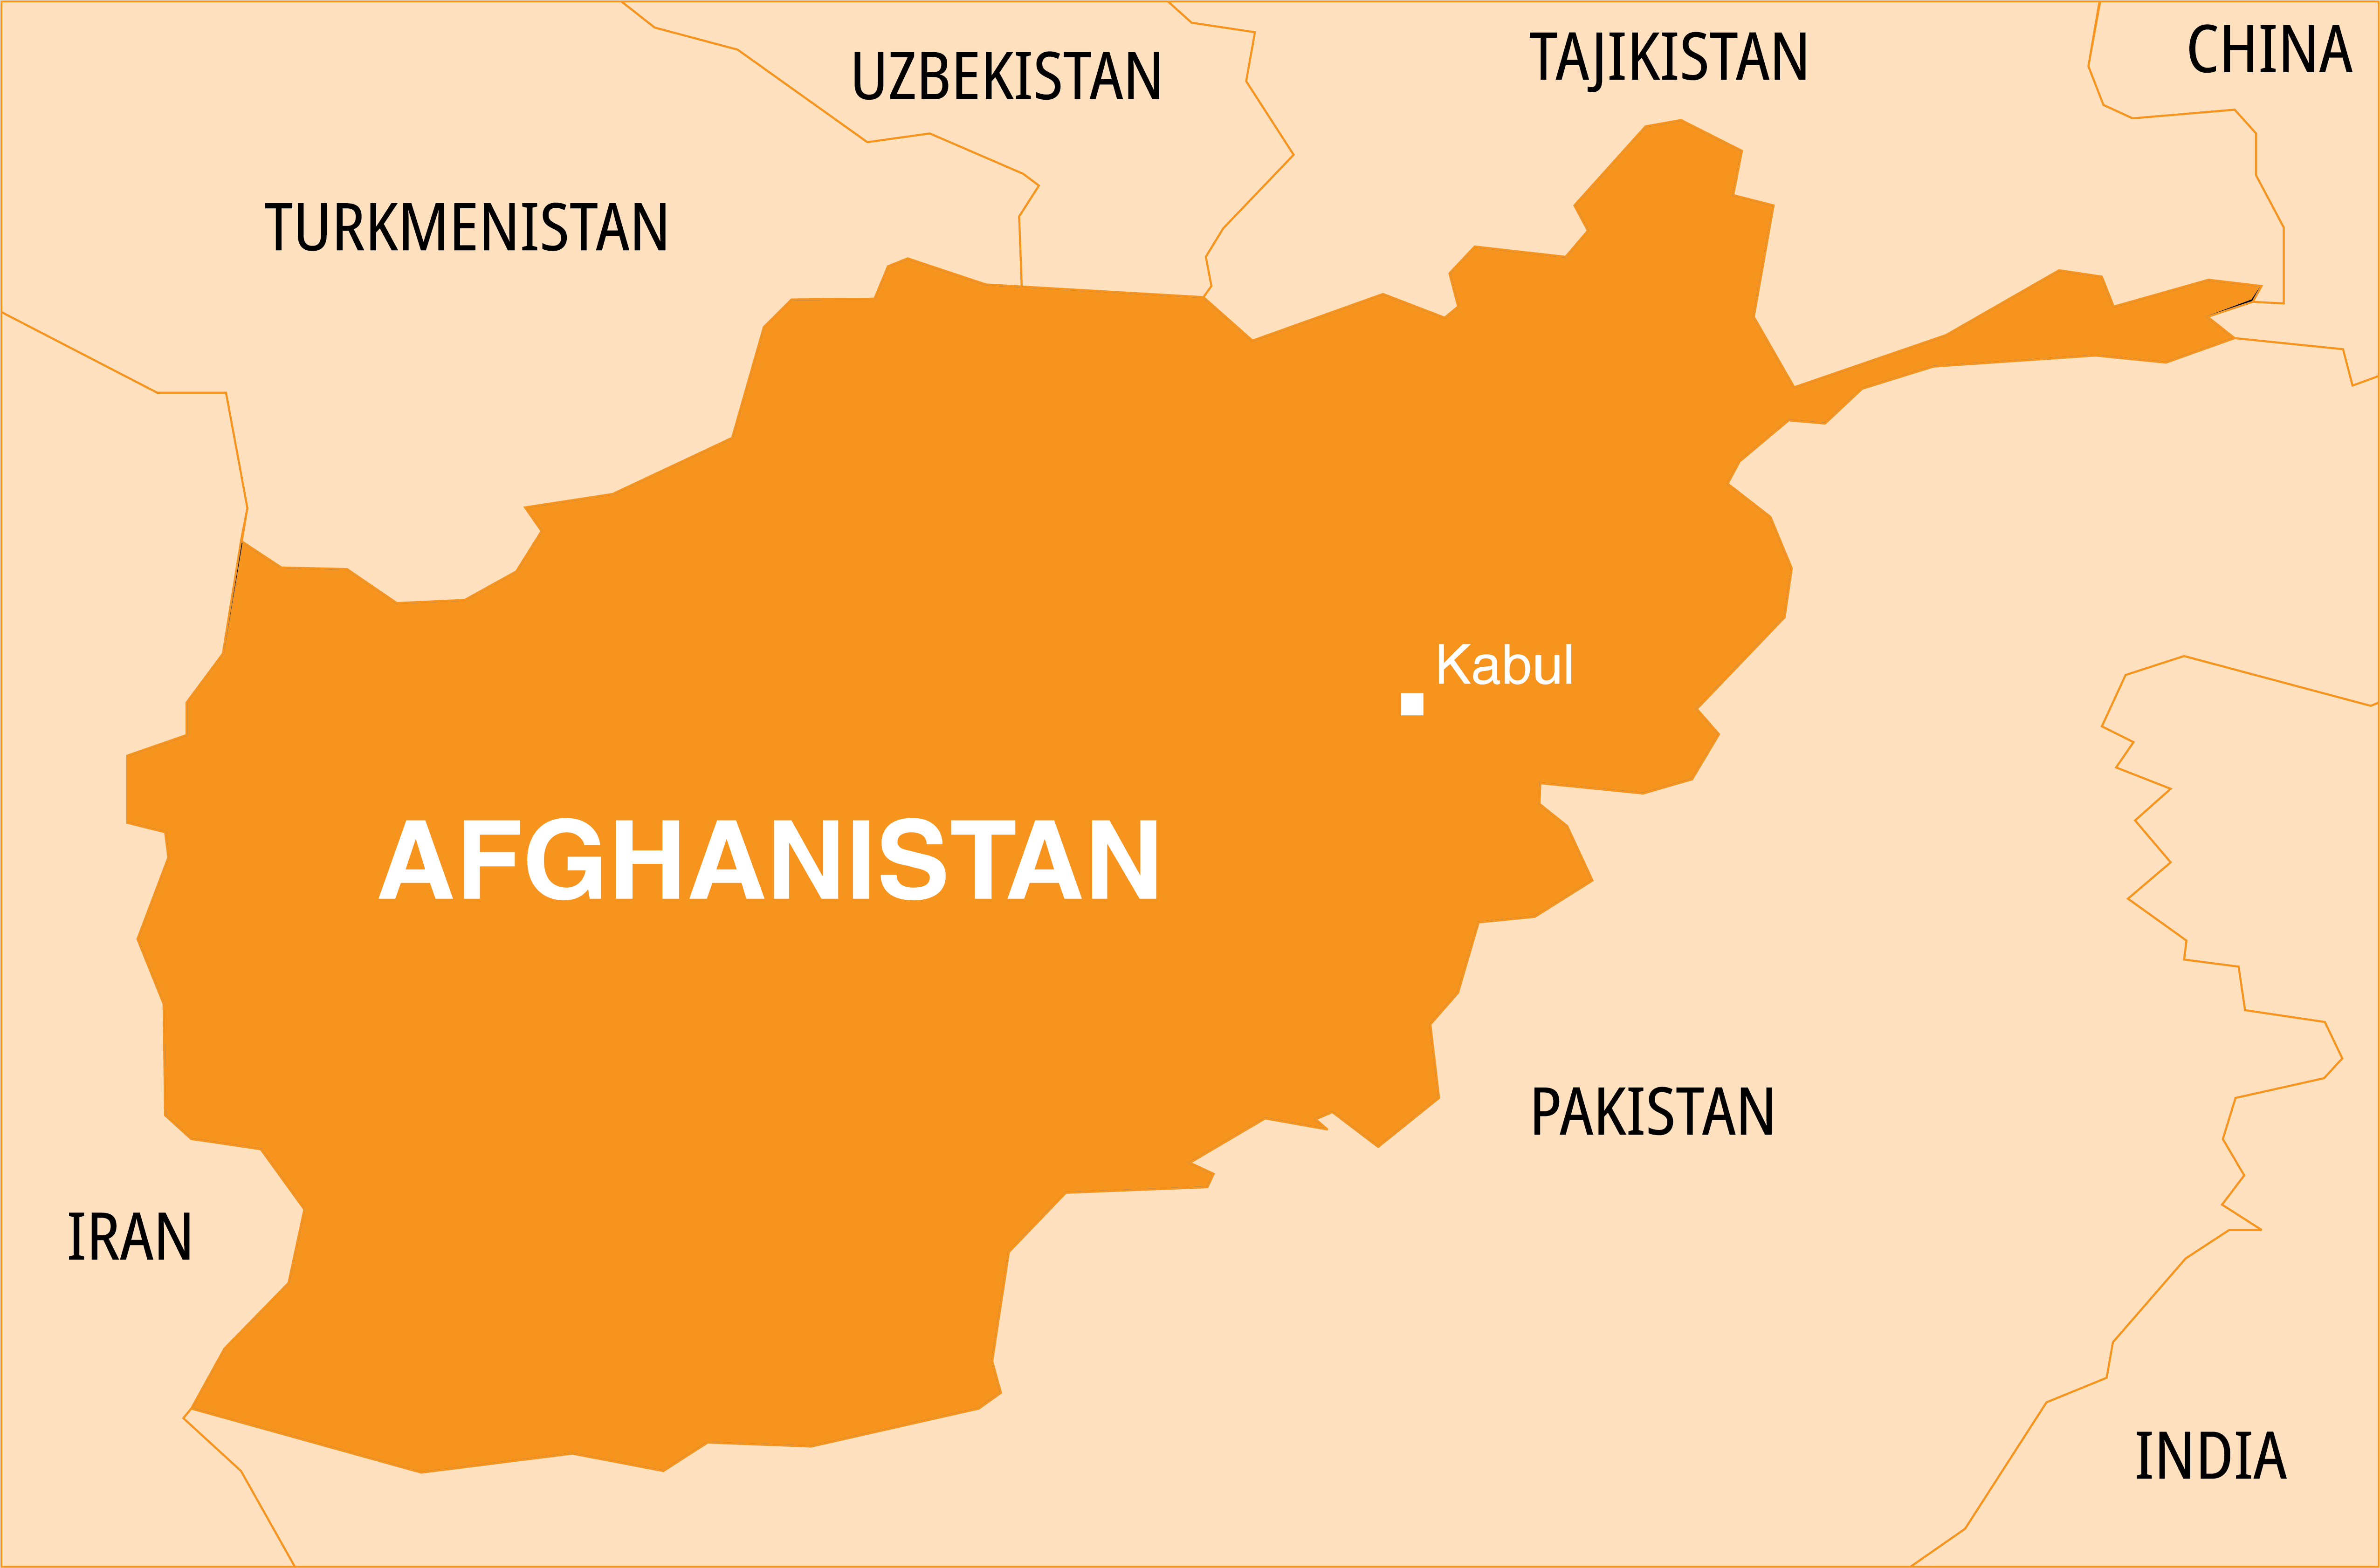 Landlocked Afghanistan is surrounded by six countries: Iran to the west; Turkmenistan, Uzbekistan, and Tajikistan, to the north; a very short border with China; and shares a long southern border with Pakistan.